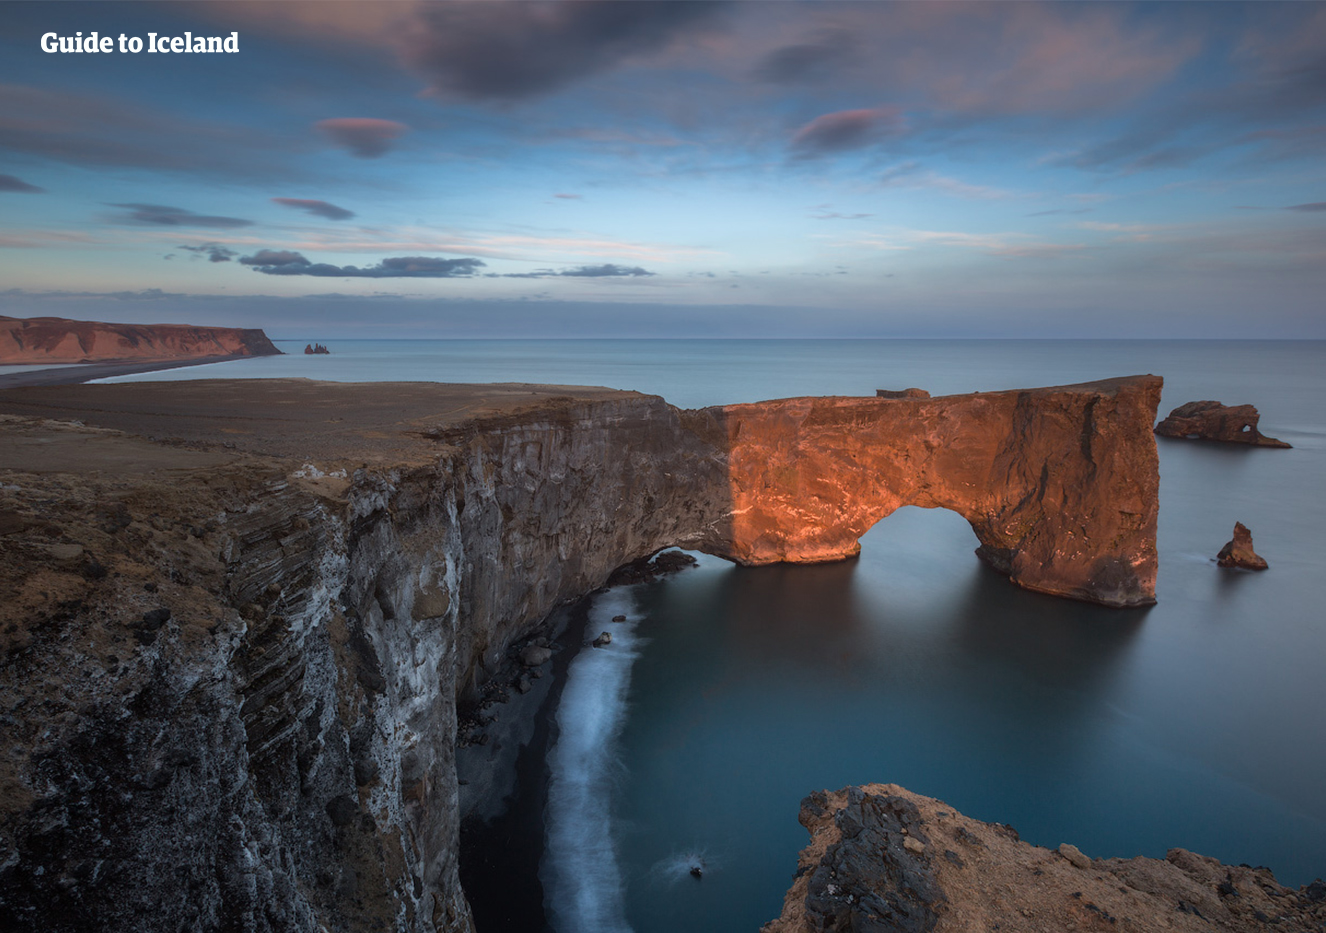 Dyrhólaey, famed for its rock arch and incredible vantage point overlooking the South Coast.